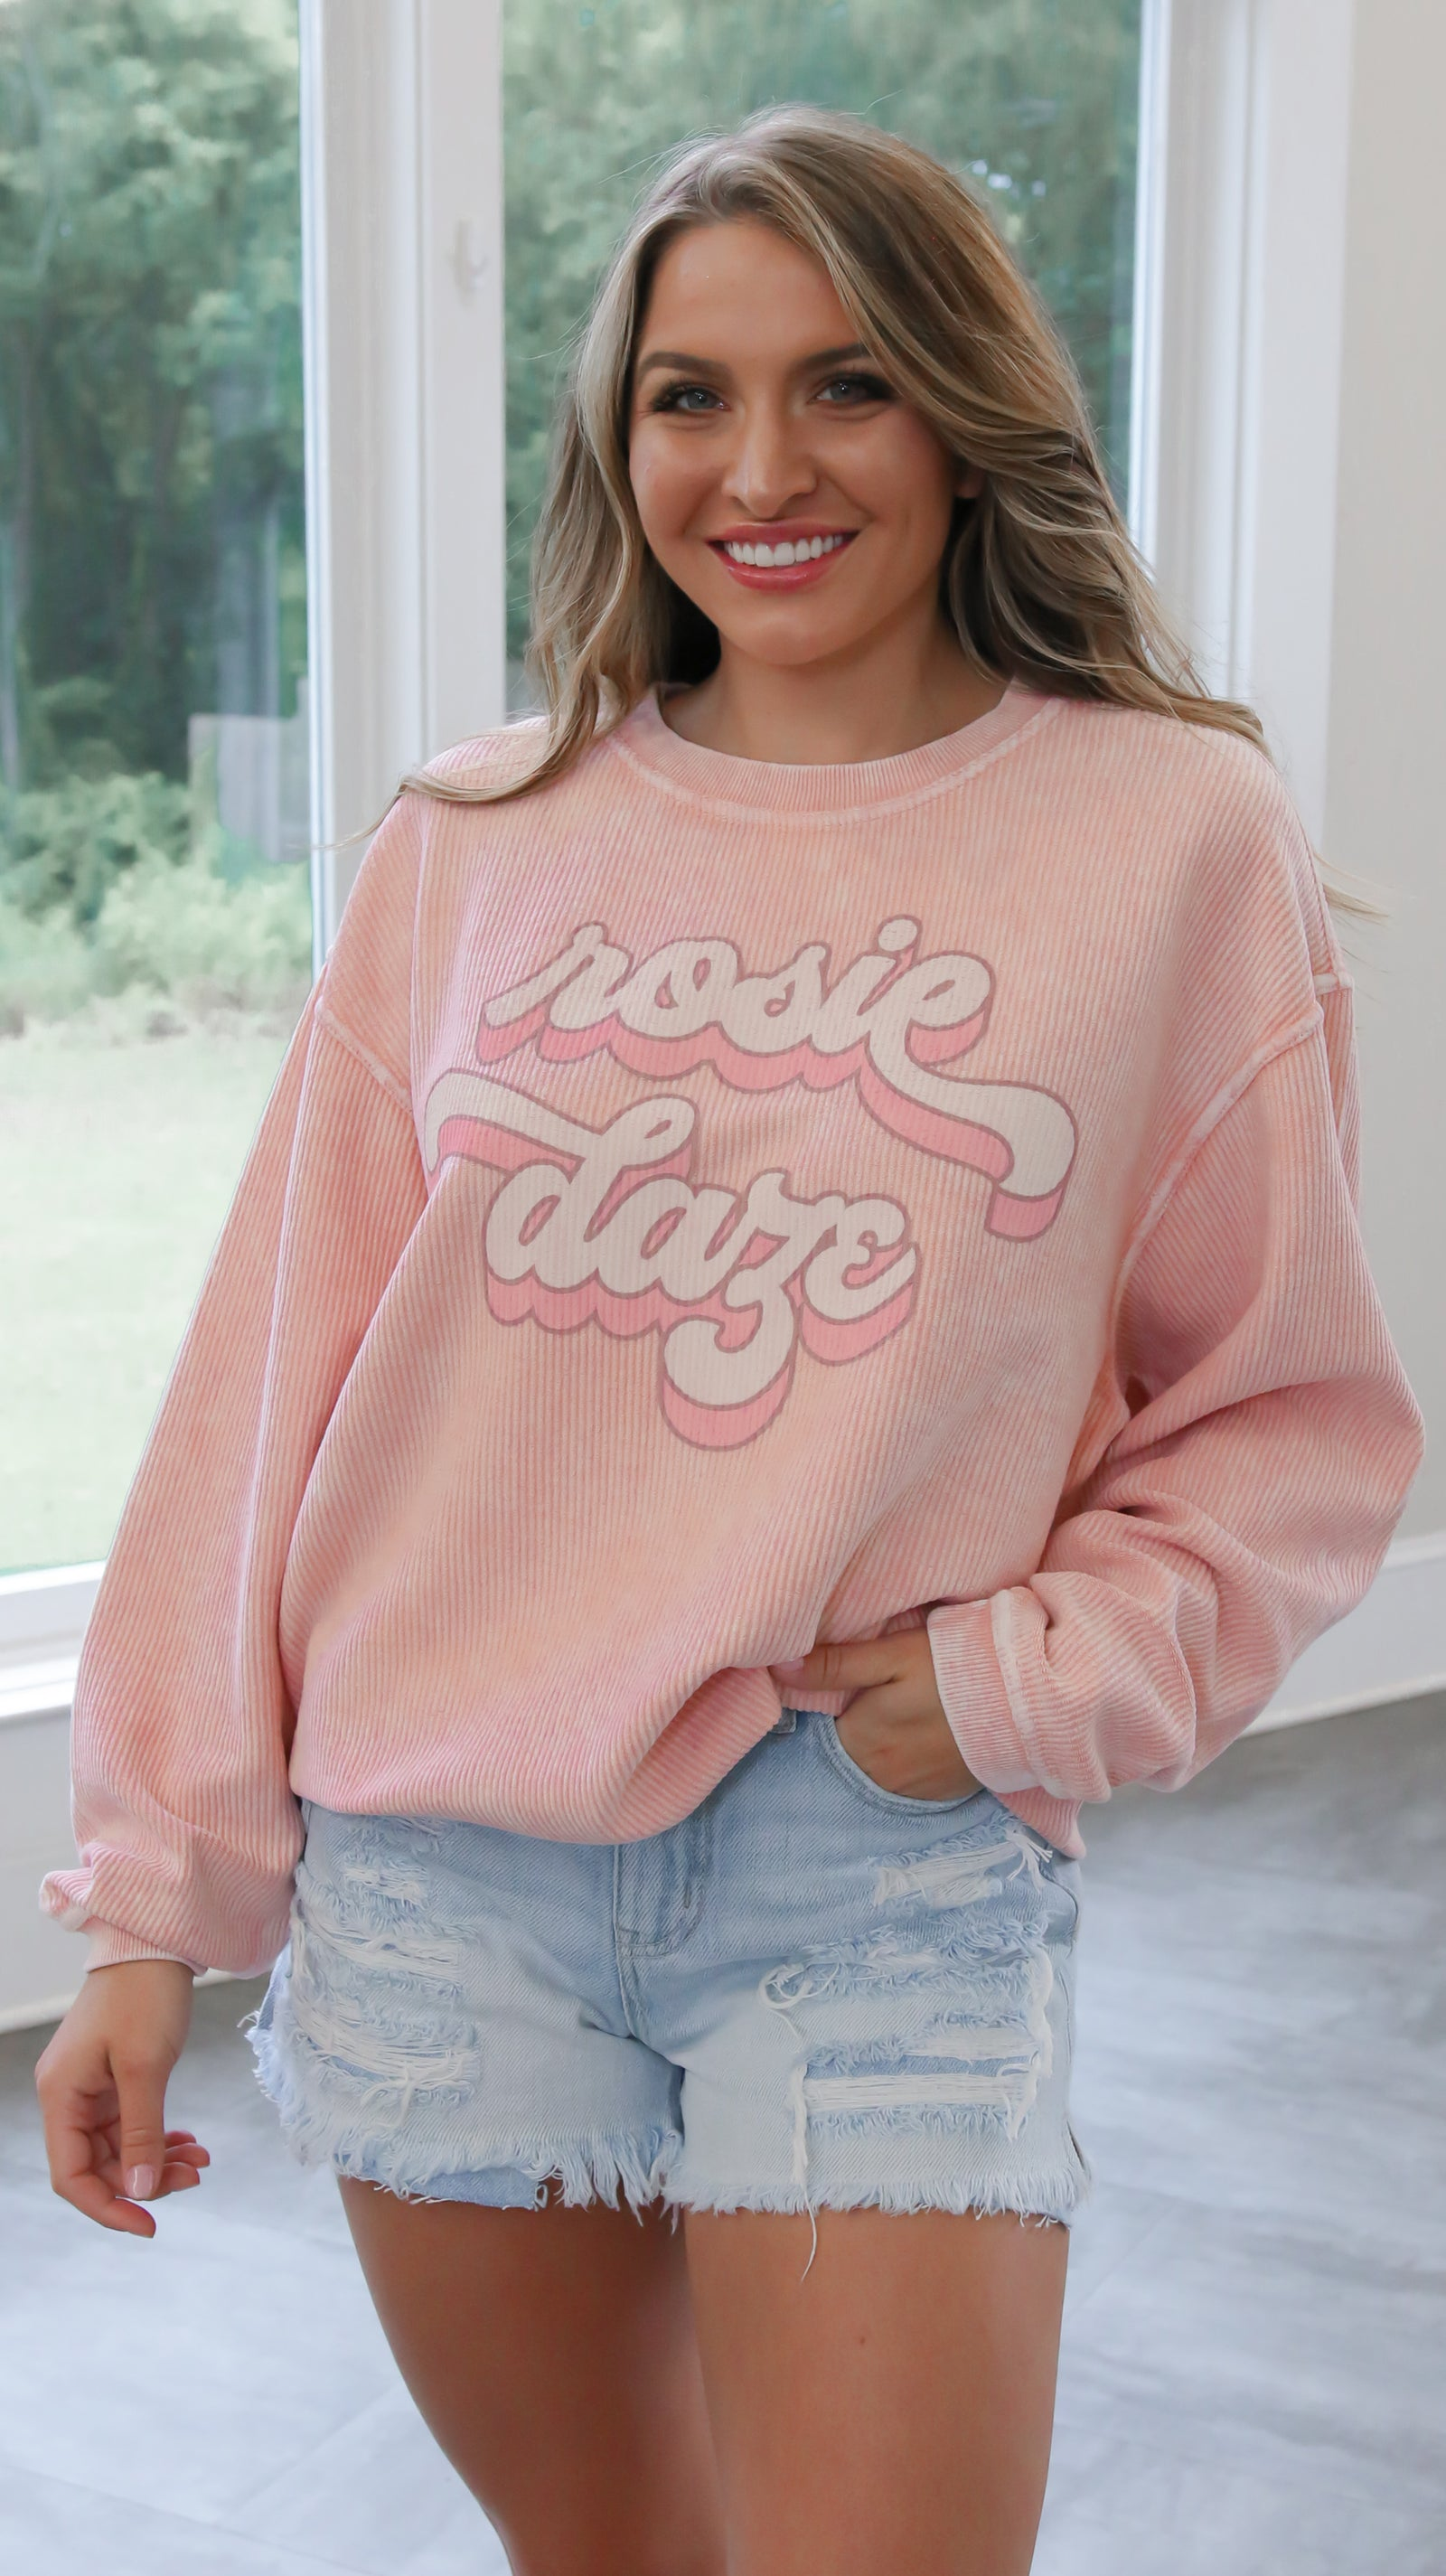 Rosie Daze Retro Crew - Blush